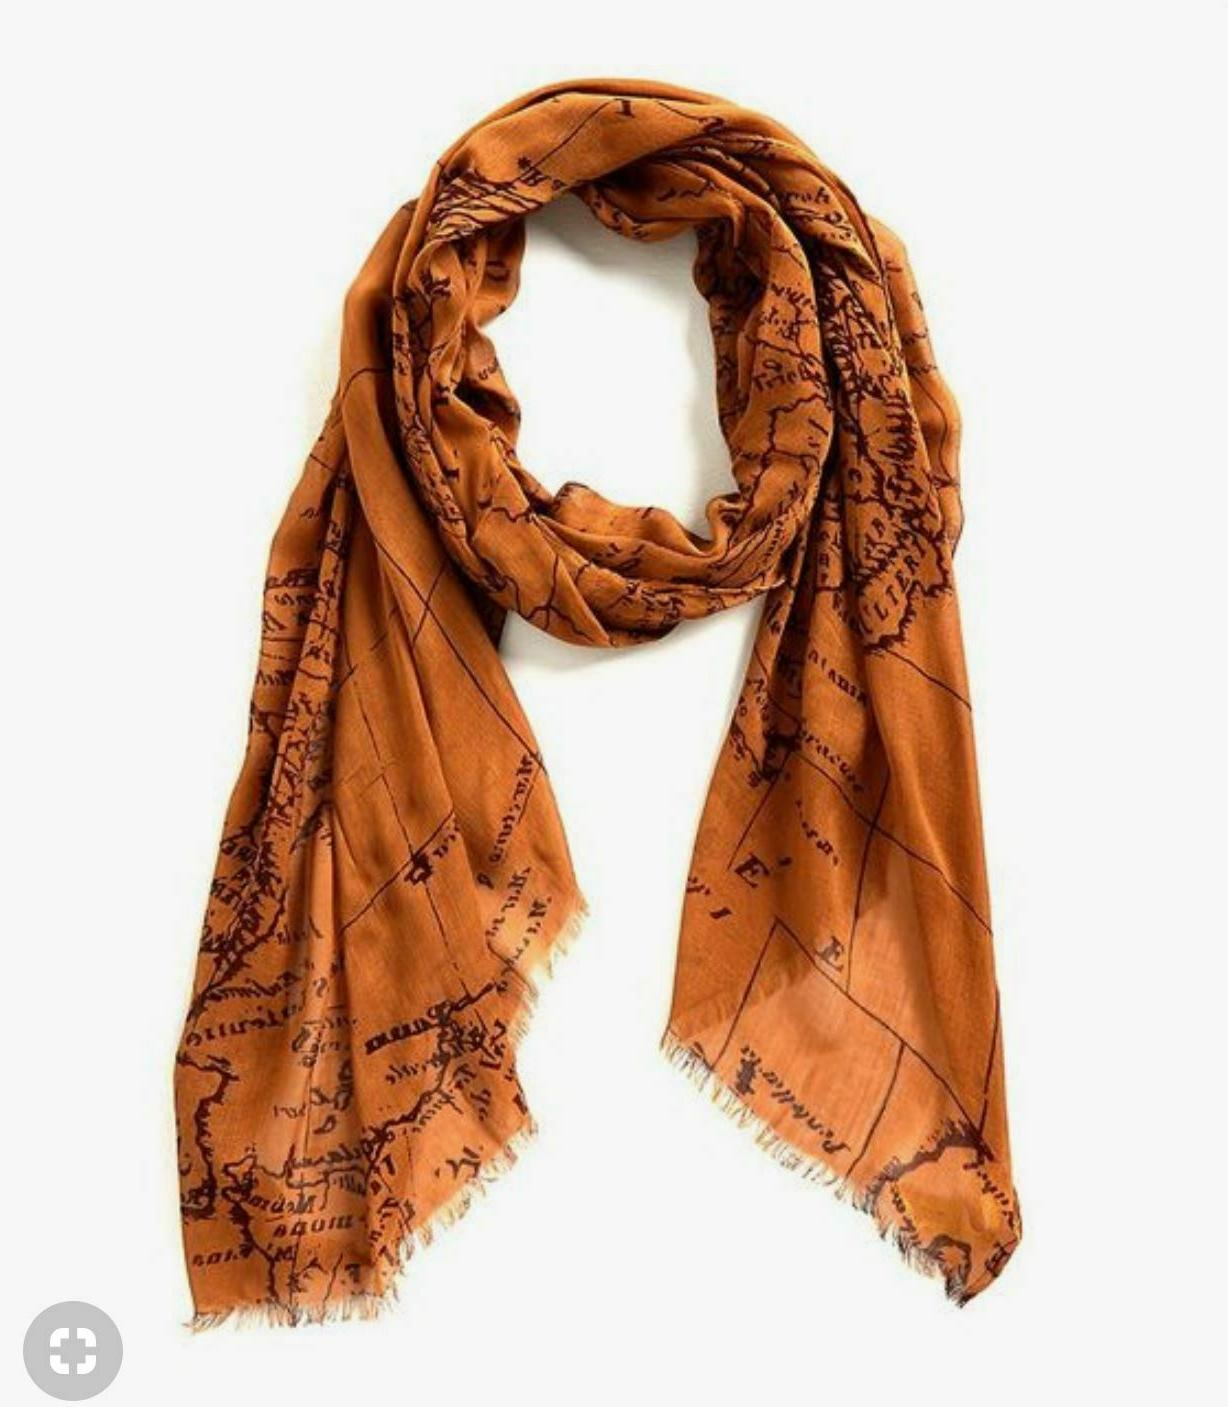 nwt scarf light weight signature map all